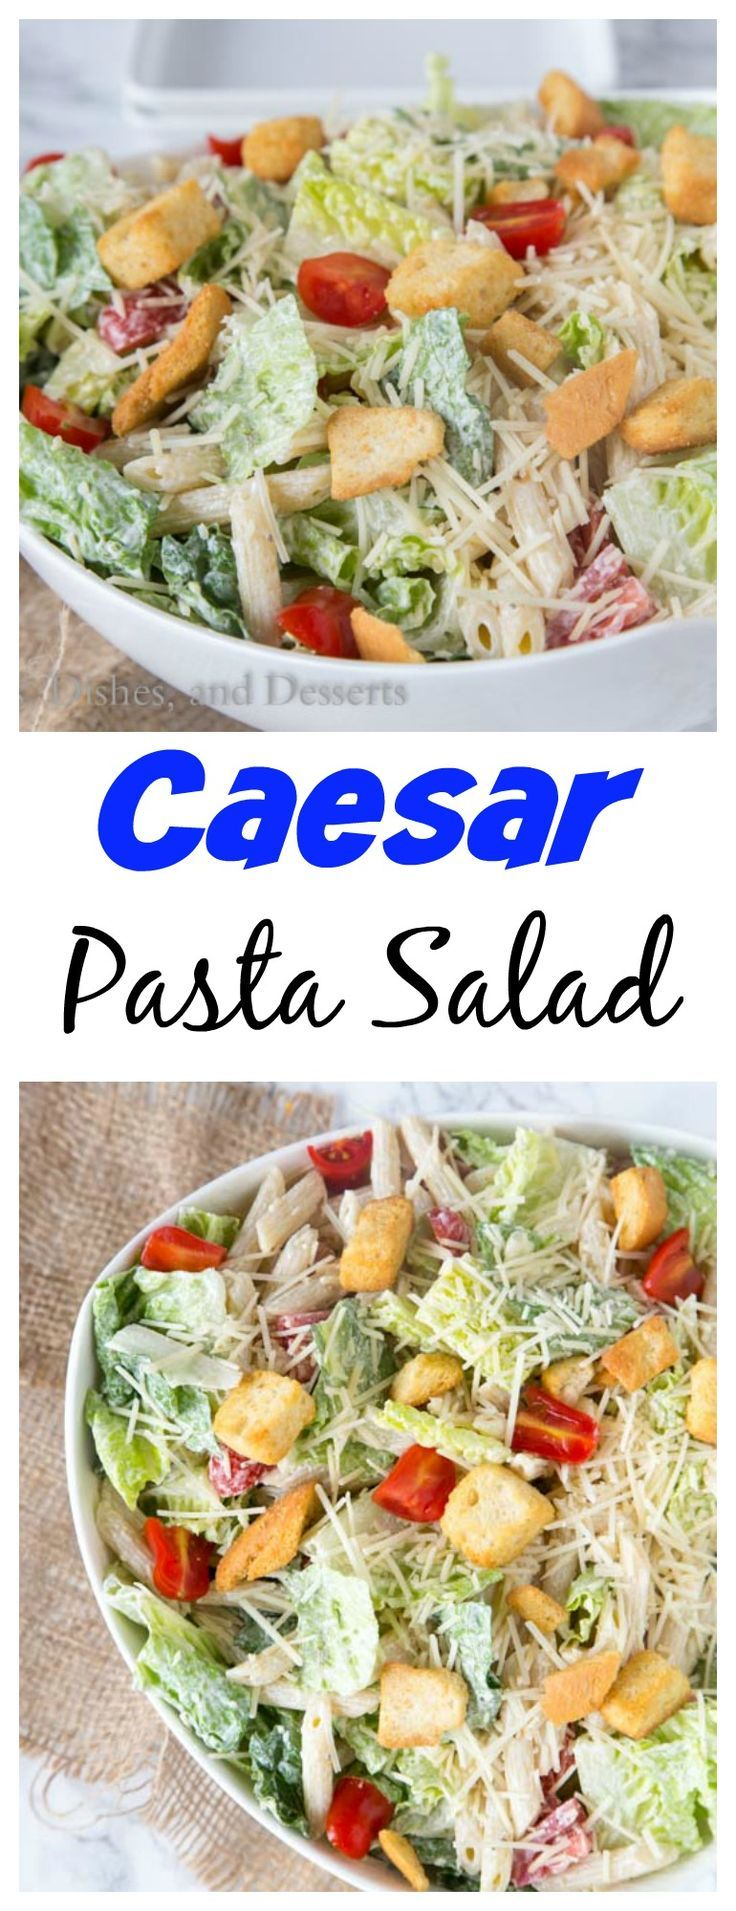 Caesar Pasta Salad – combine two favorites for one perfect summer side dish. Caesar salad and pasta salad come together in an easy dish everyone will love! #PastaPalooza2016